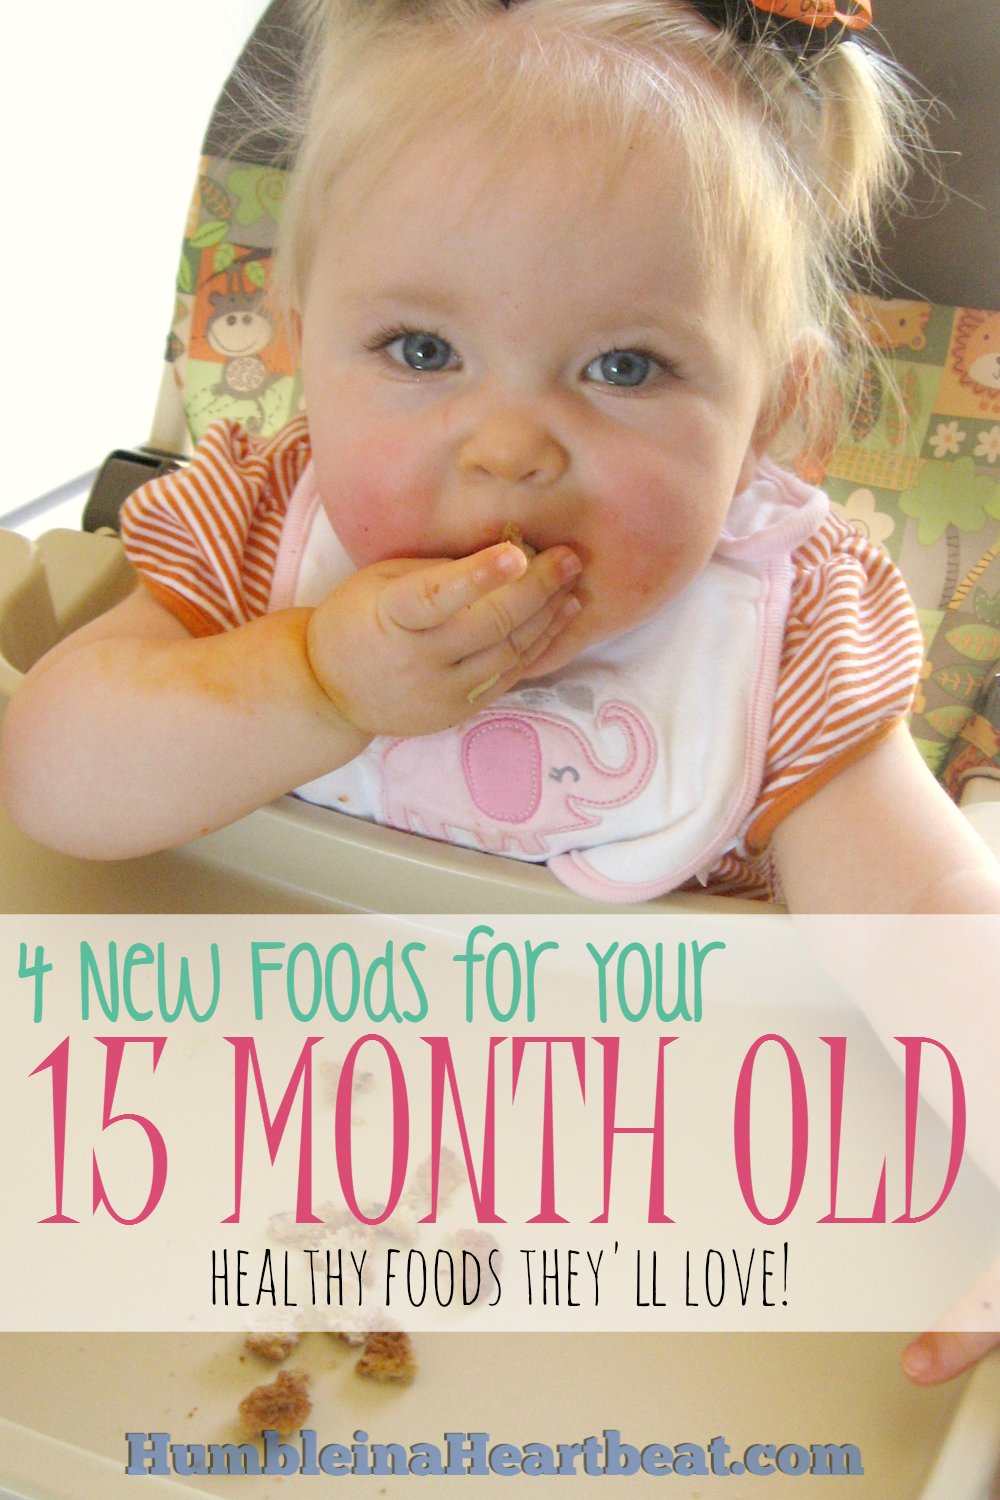 Rotating new and familiar foods for your growing toddler is essential for optimal nutrition. Here are the 4 foods I introduced to my 15 month old this month with details about each one.